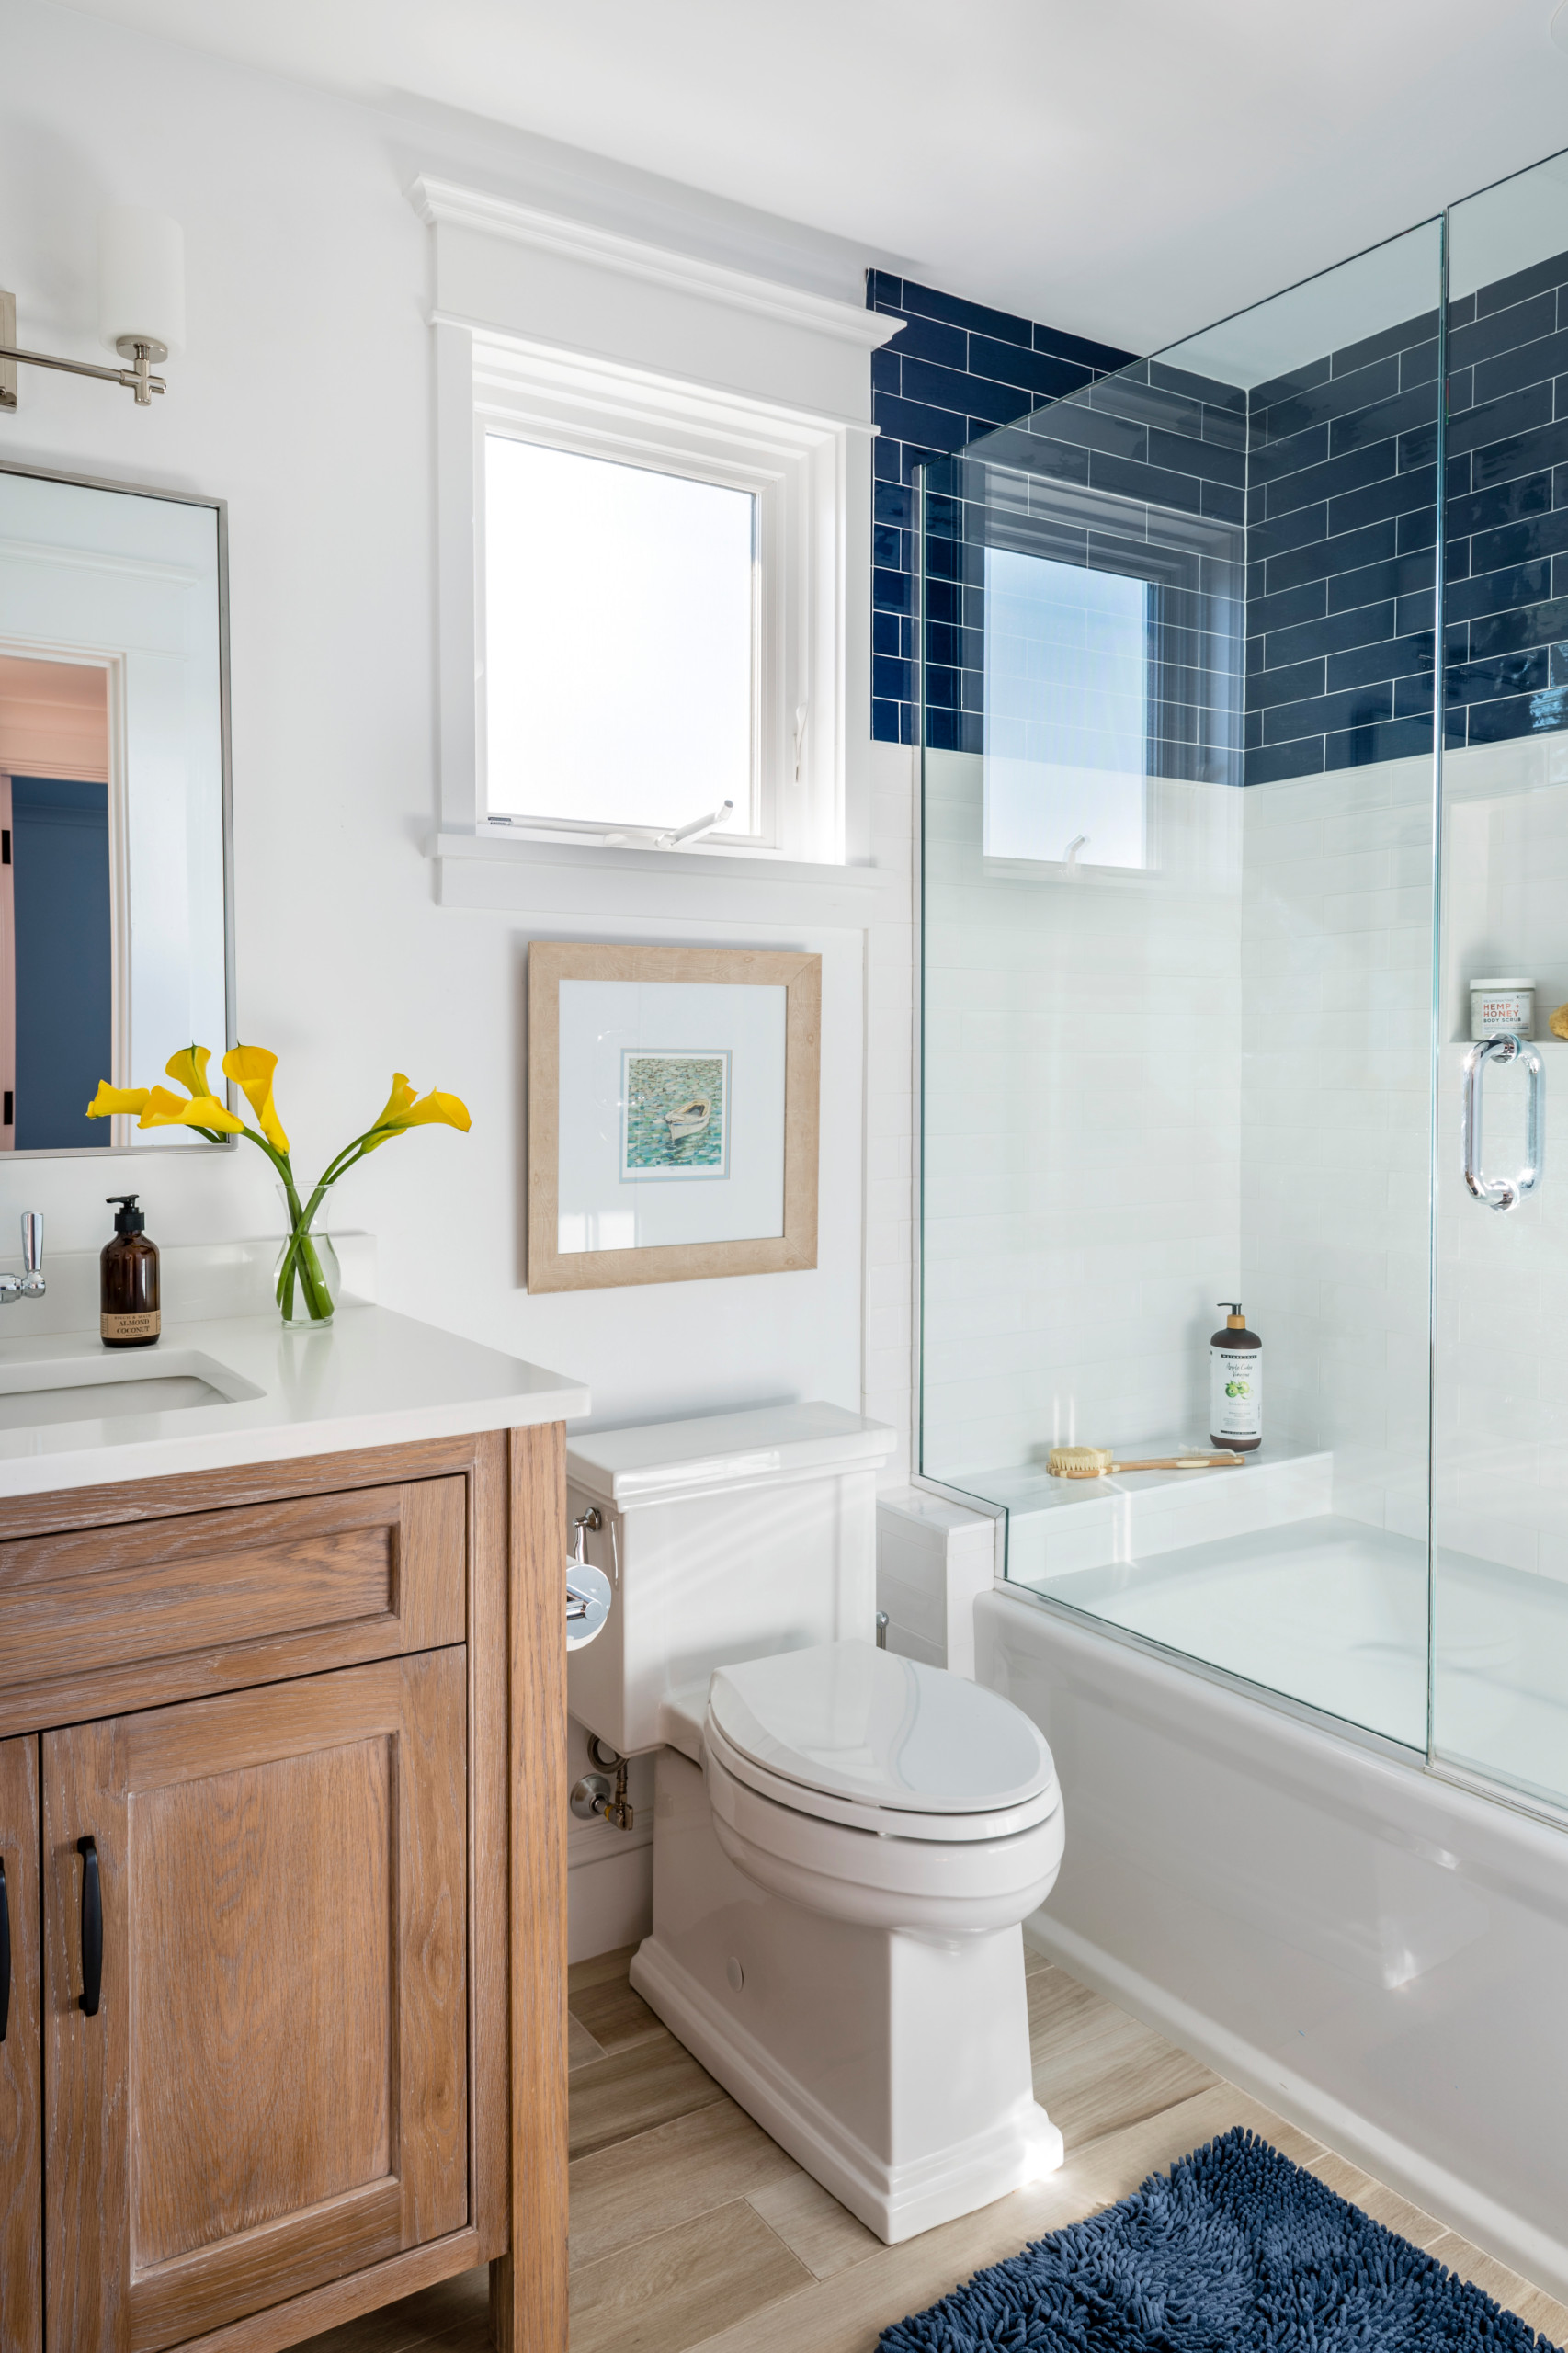 75 Beautiful Blue Tile Bathroom Pictures Ideas February 2021 Houzz